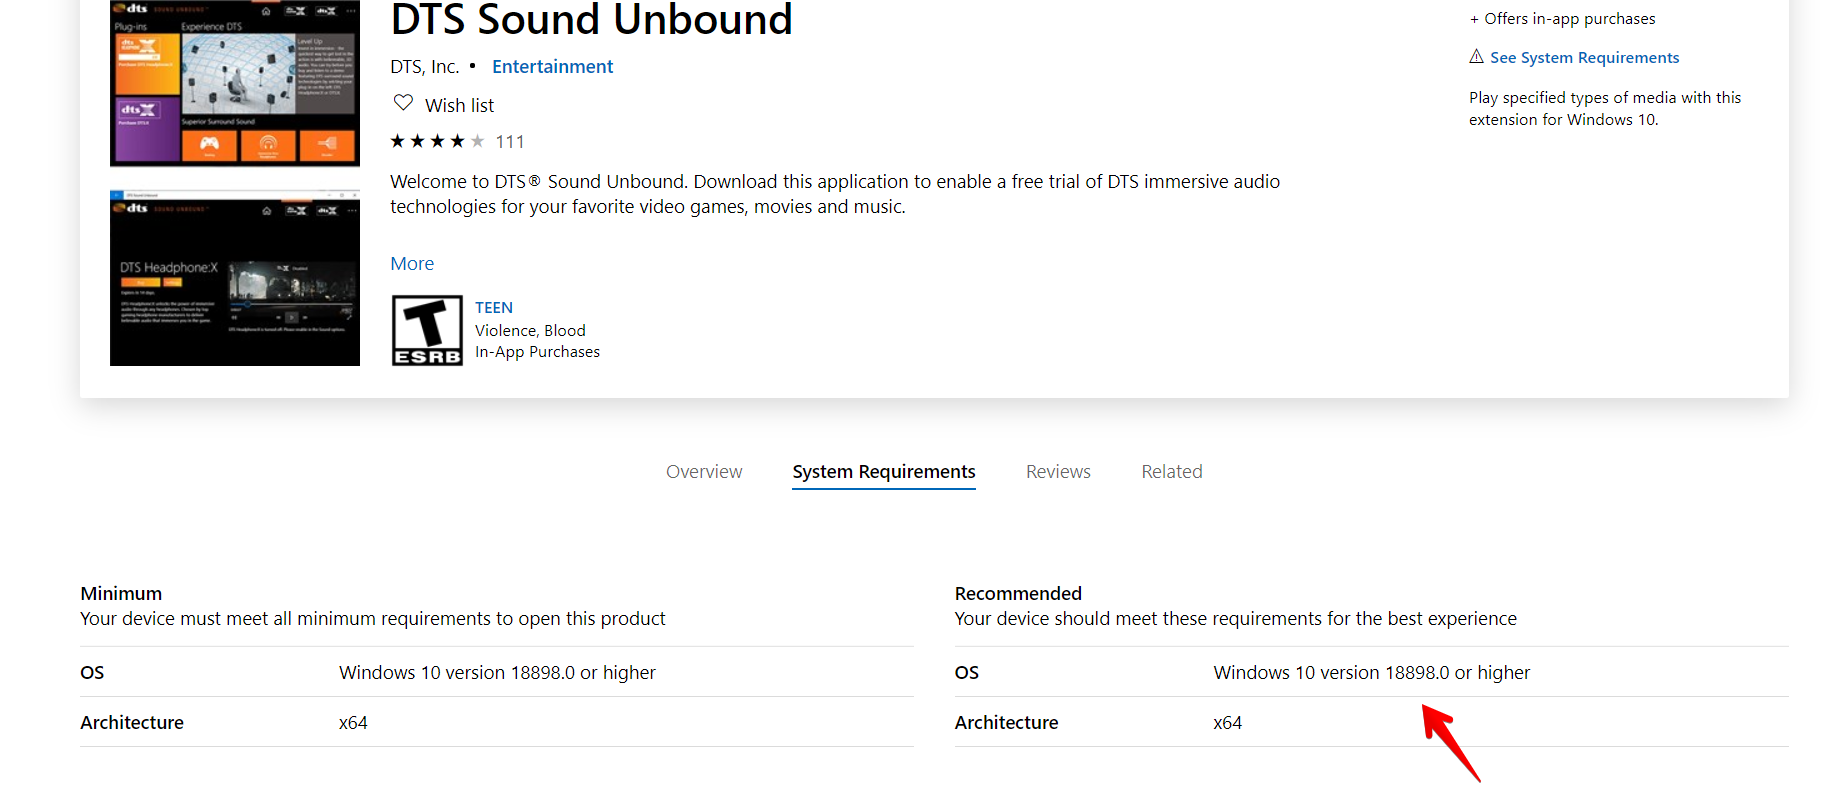 DTS Sound Unbound only gives option to buy or try free trial, even after purchase 90083ed8-70e9-43d9-9bf6-9009ea403106?upload=true.png